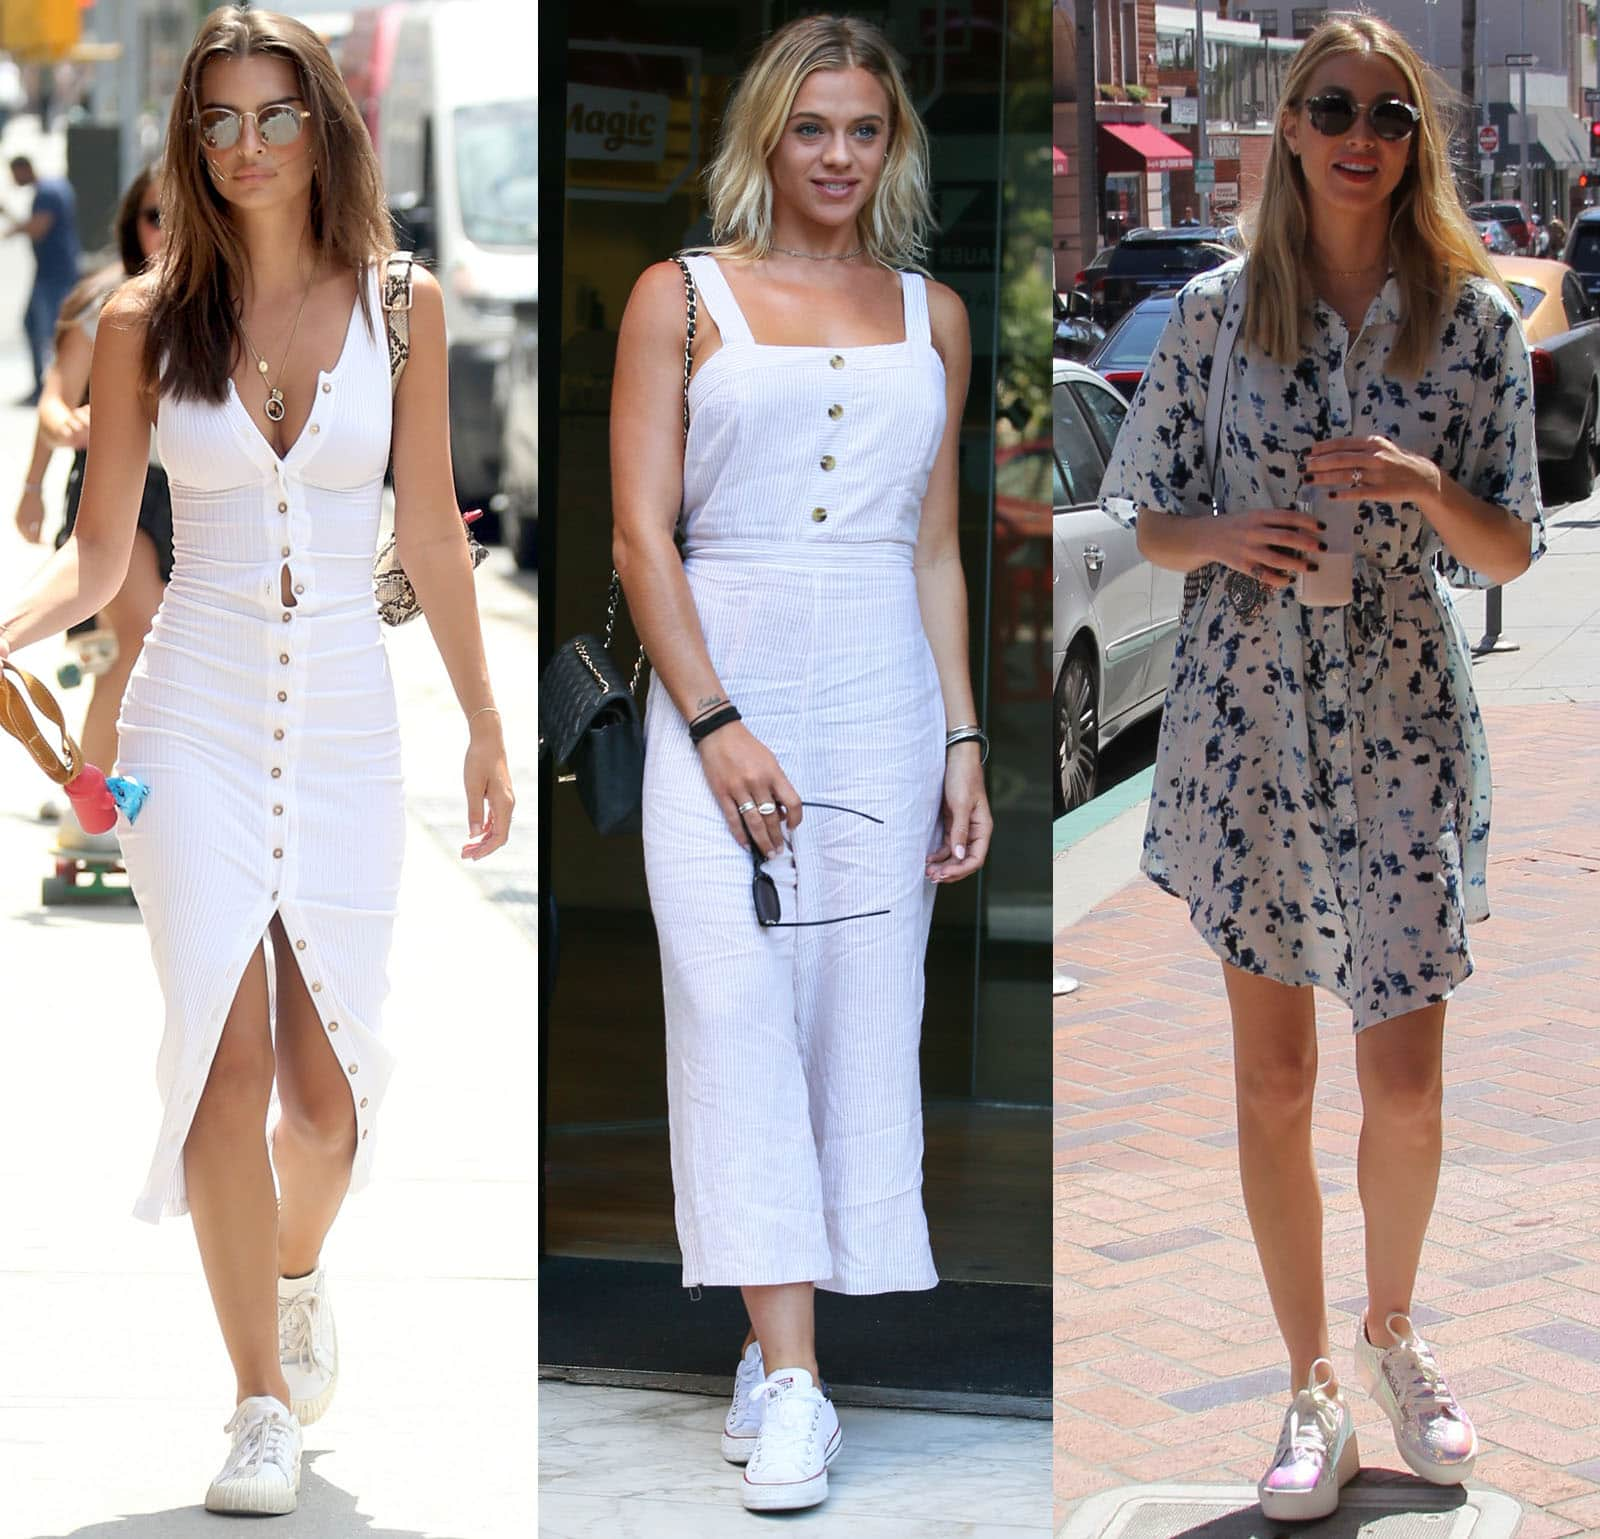 Emily Ratajkowski, Laura Crane, and Whitney Port wear summer-chic outfits with white sneakers